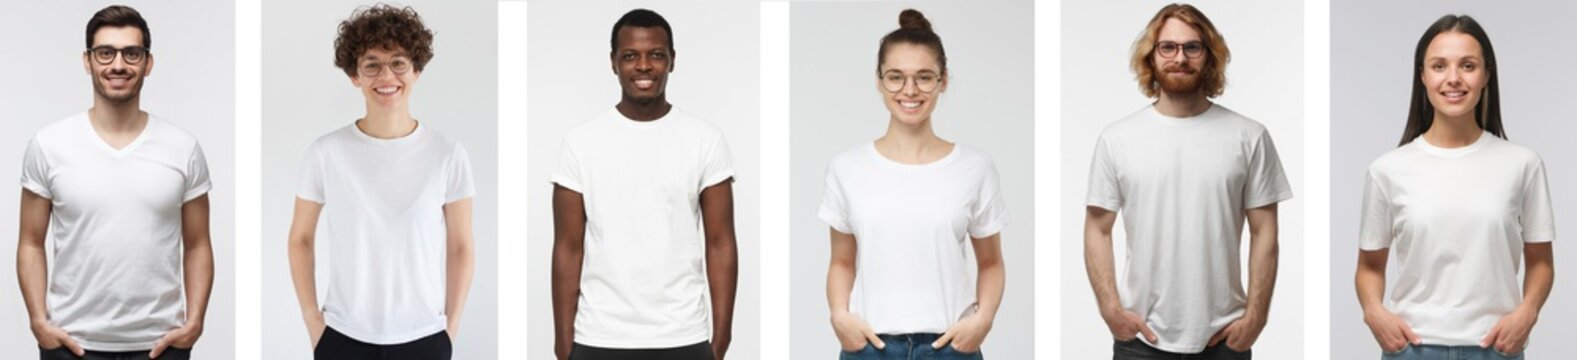 Young people in white t-shirt. Collage of many men and women wearing blank tshirt with copy space for your logo